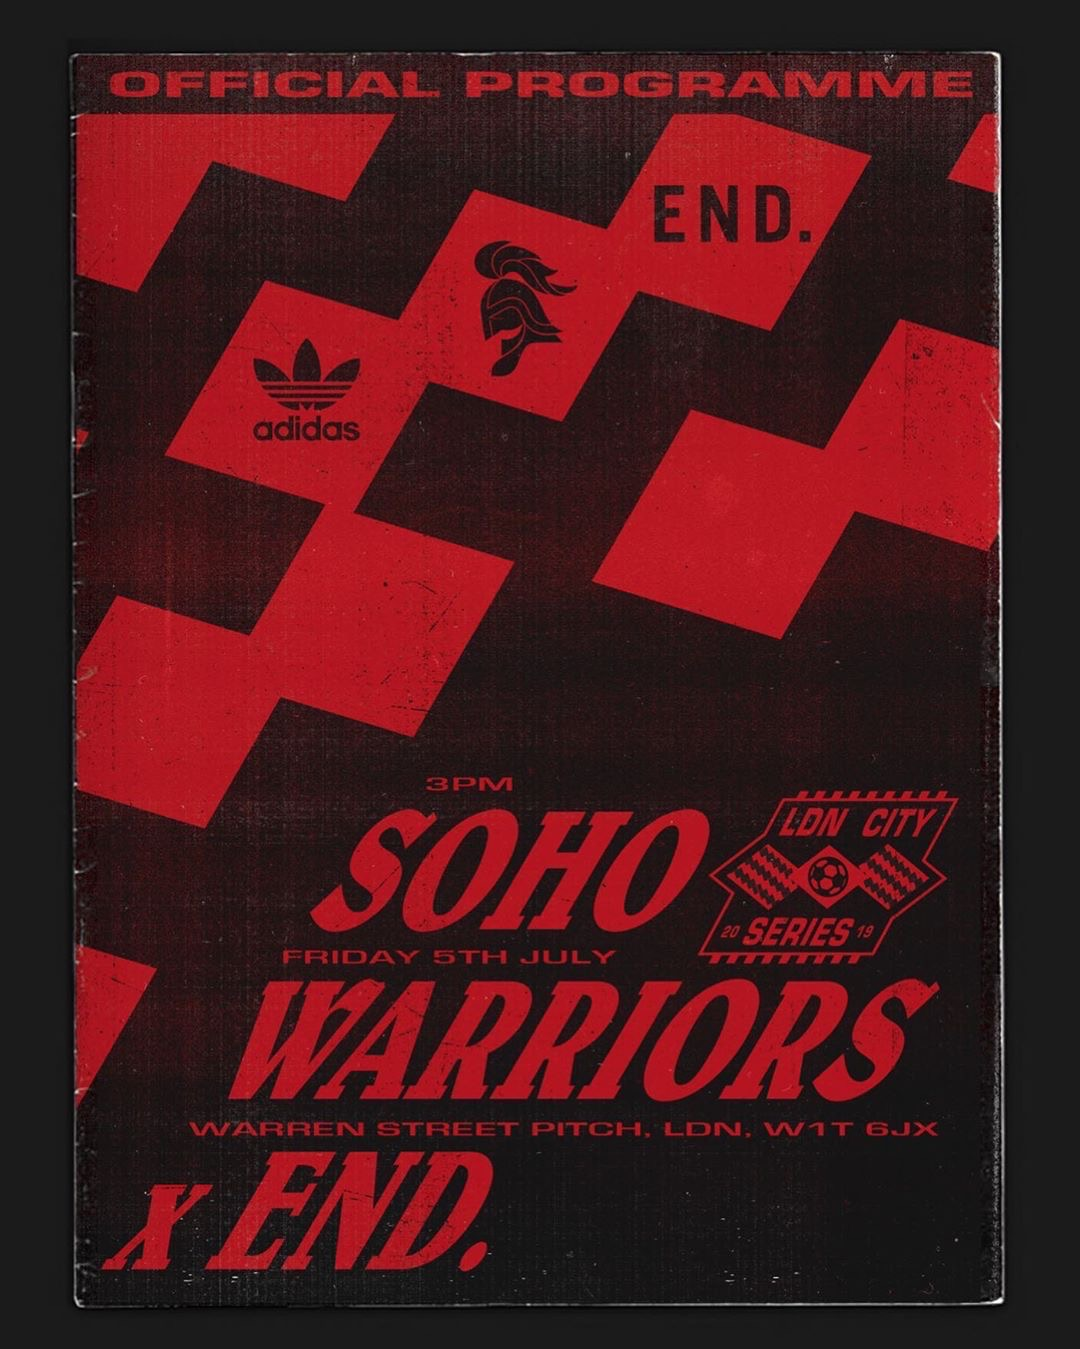 Soho Warriors